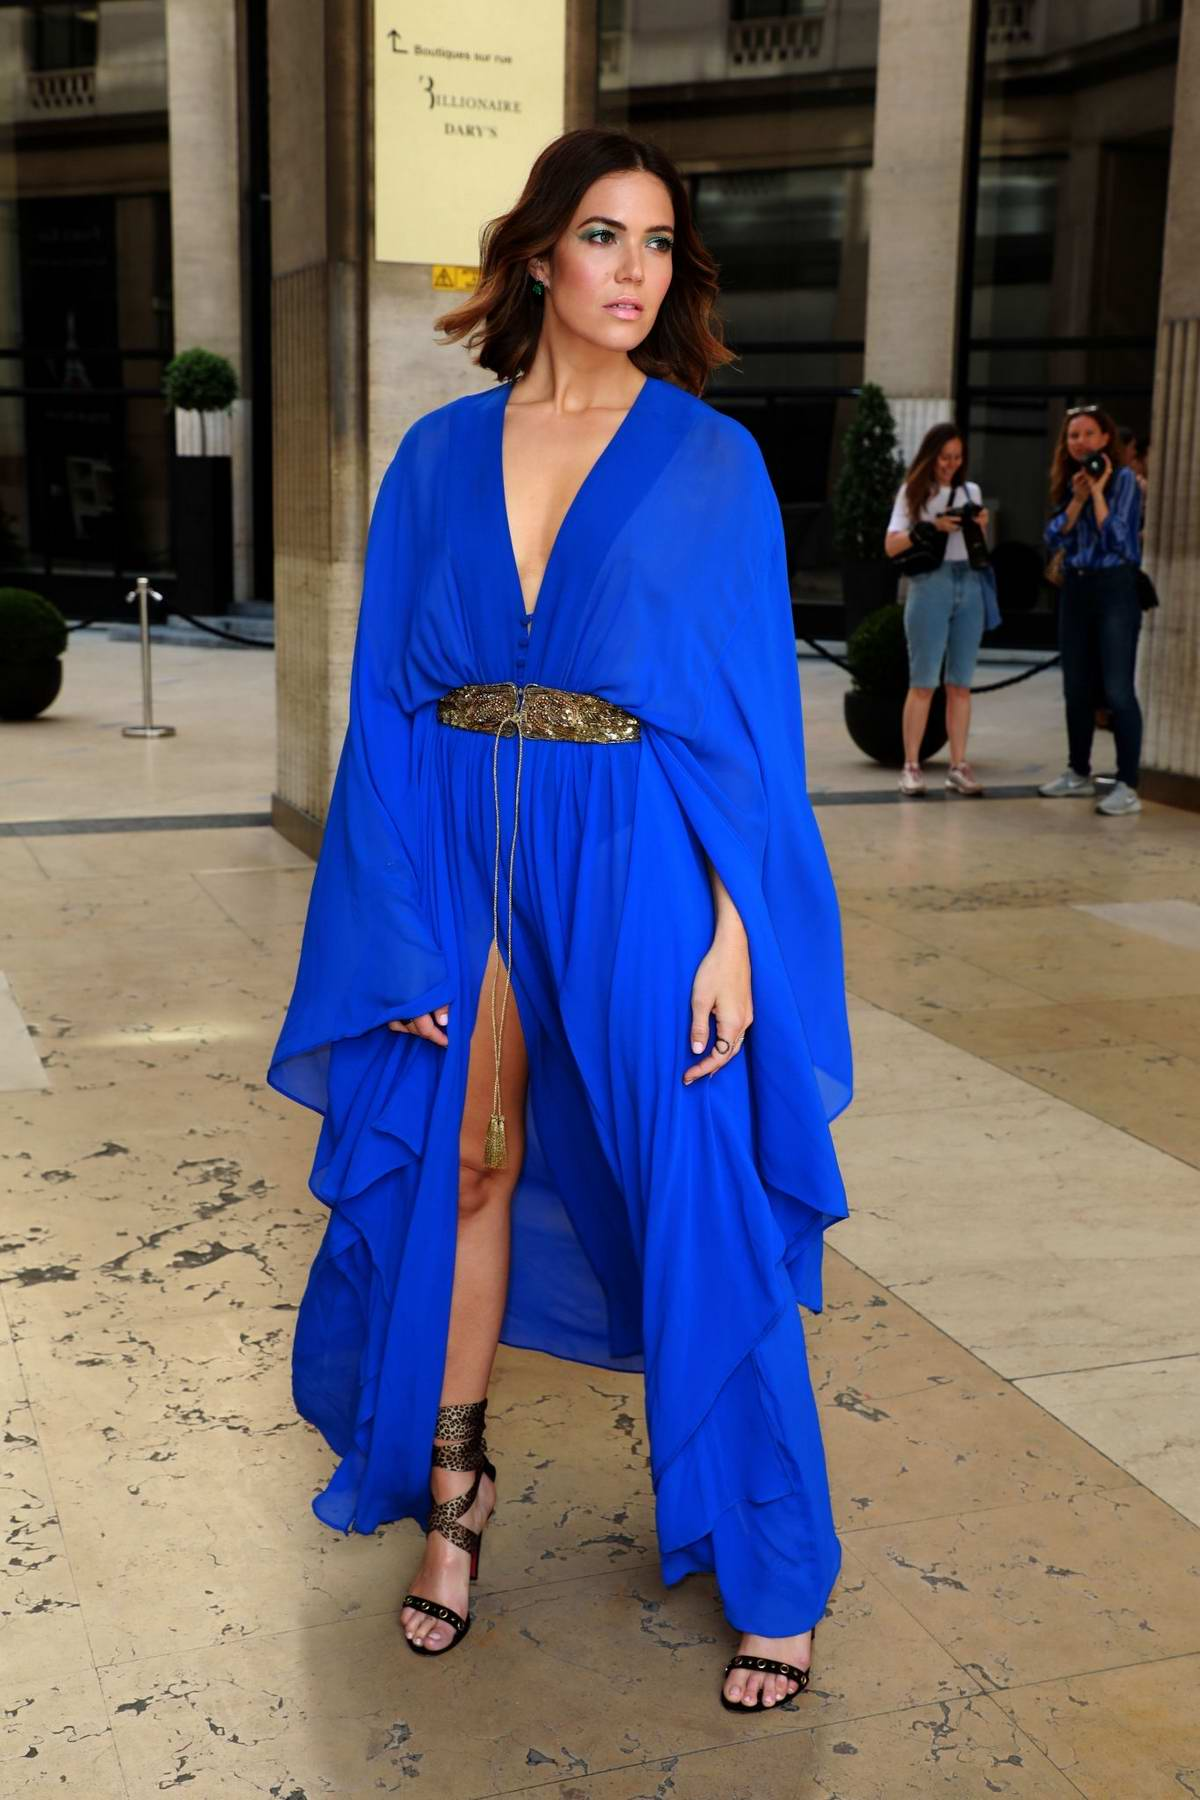 Mandy Moore attends the Dundas show, Haute Couture Fall/Winter 2019/2020 during Paris Fashion Week in Paris, France